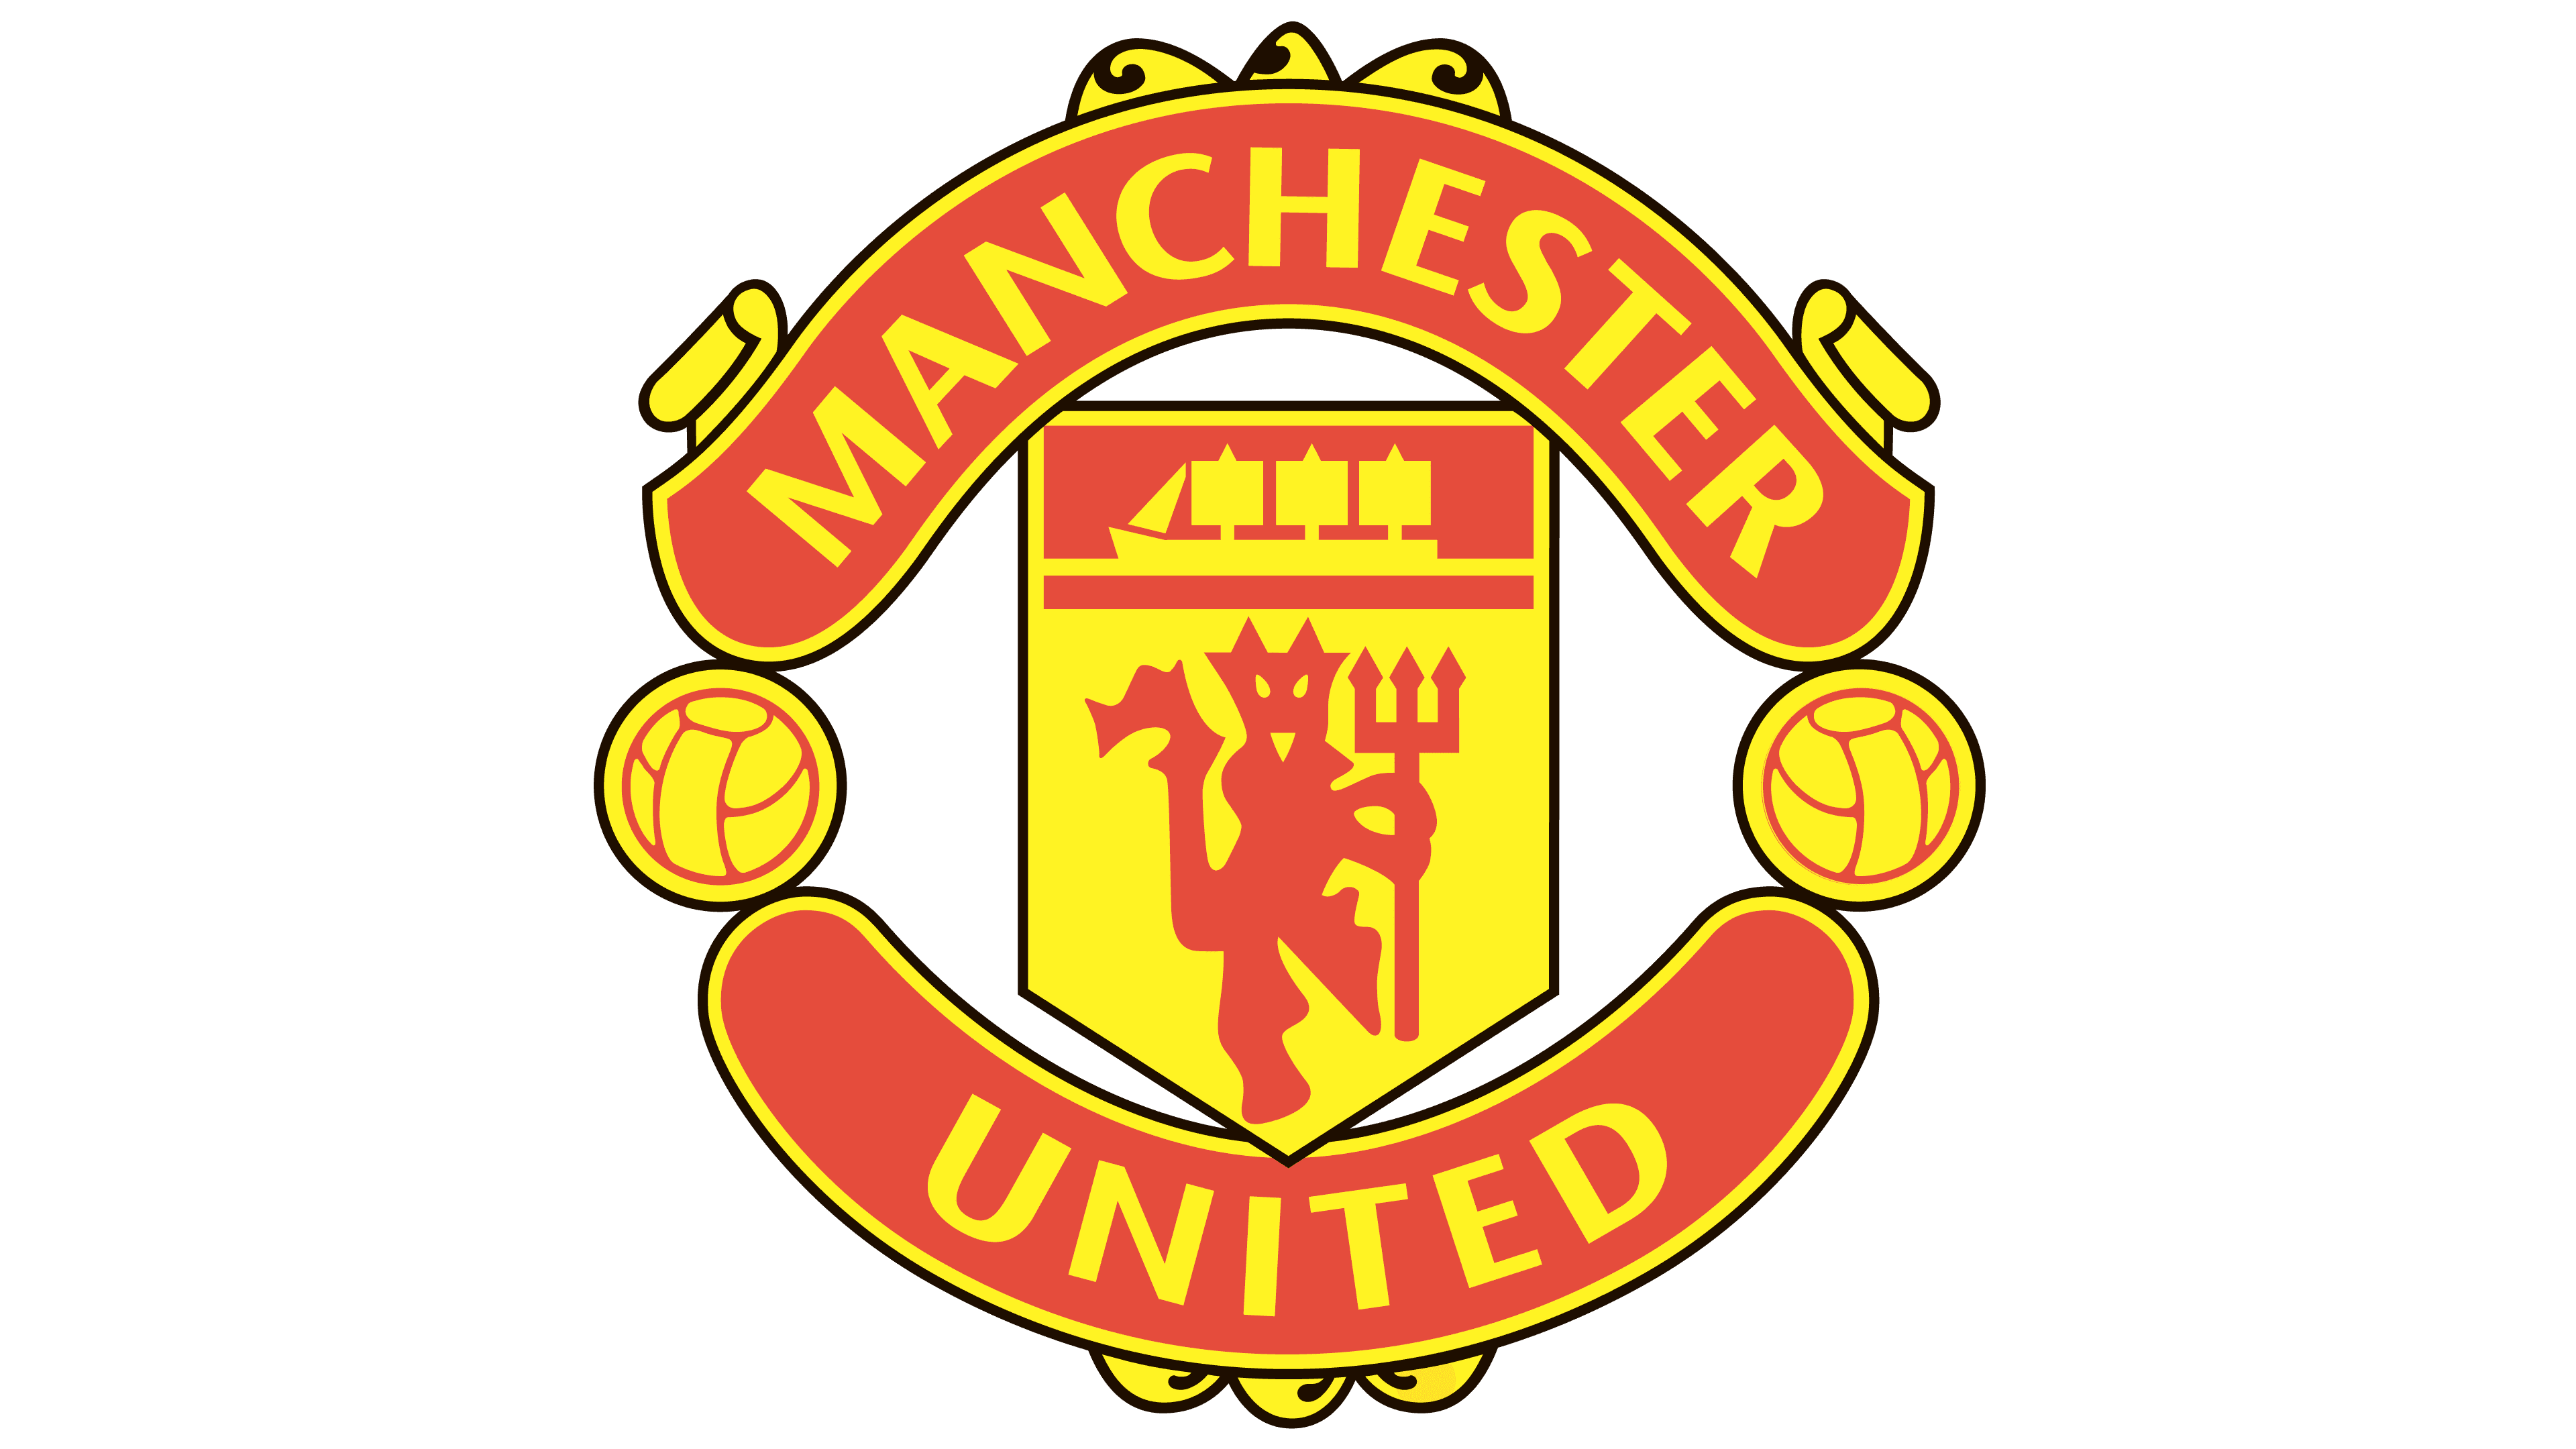 Manchester United Logo | The most famous brands and company logos in the  world